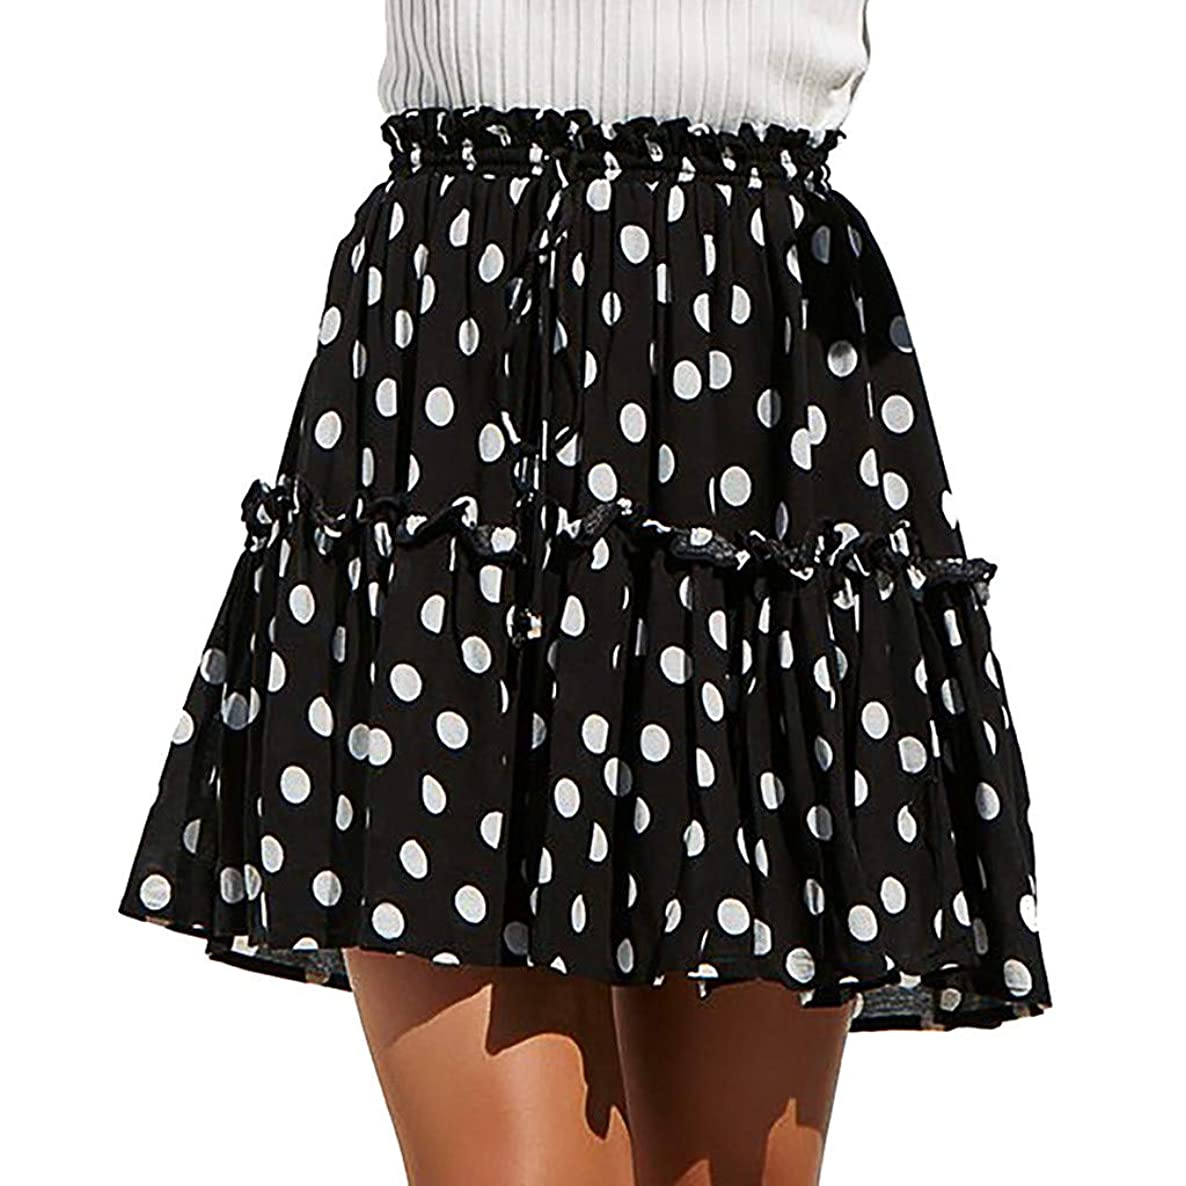 Claystyle Mini Skirt Fashion Women Casual Polka Dot Print Ruffles A-Line Skirt Pleated Lace Up Short Skirt